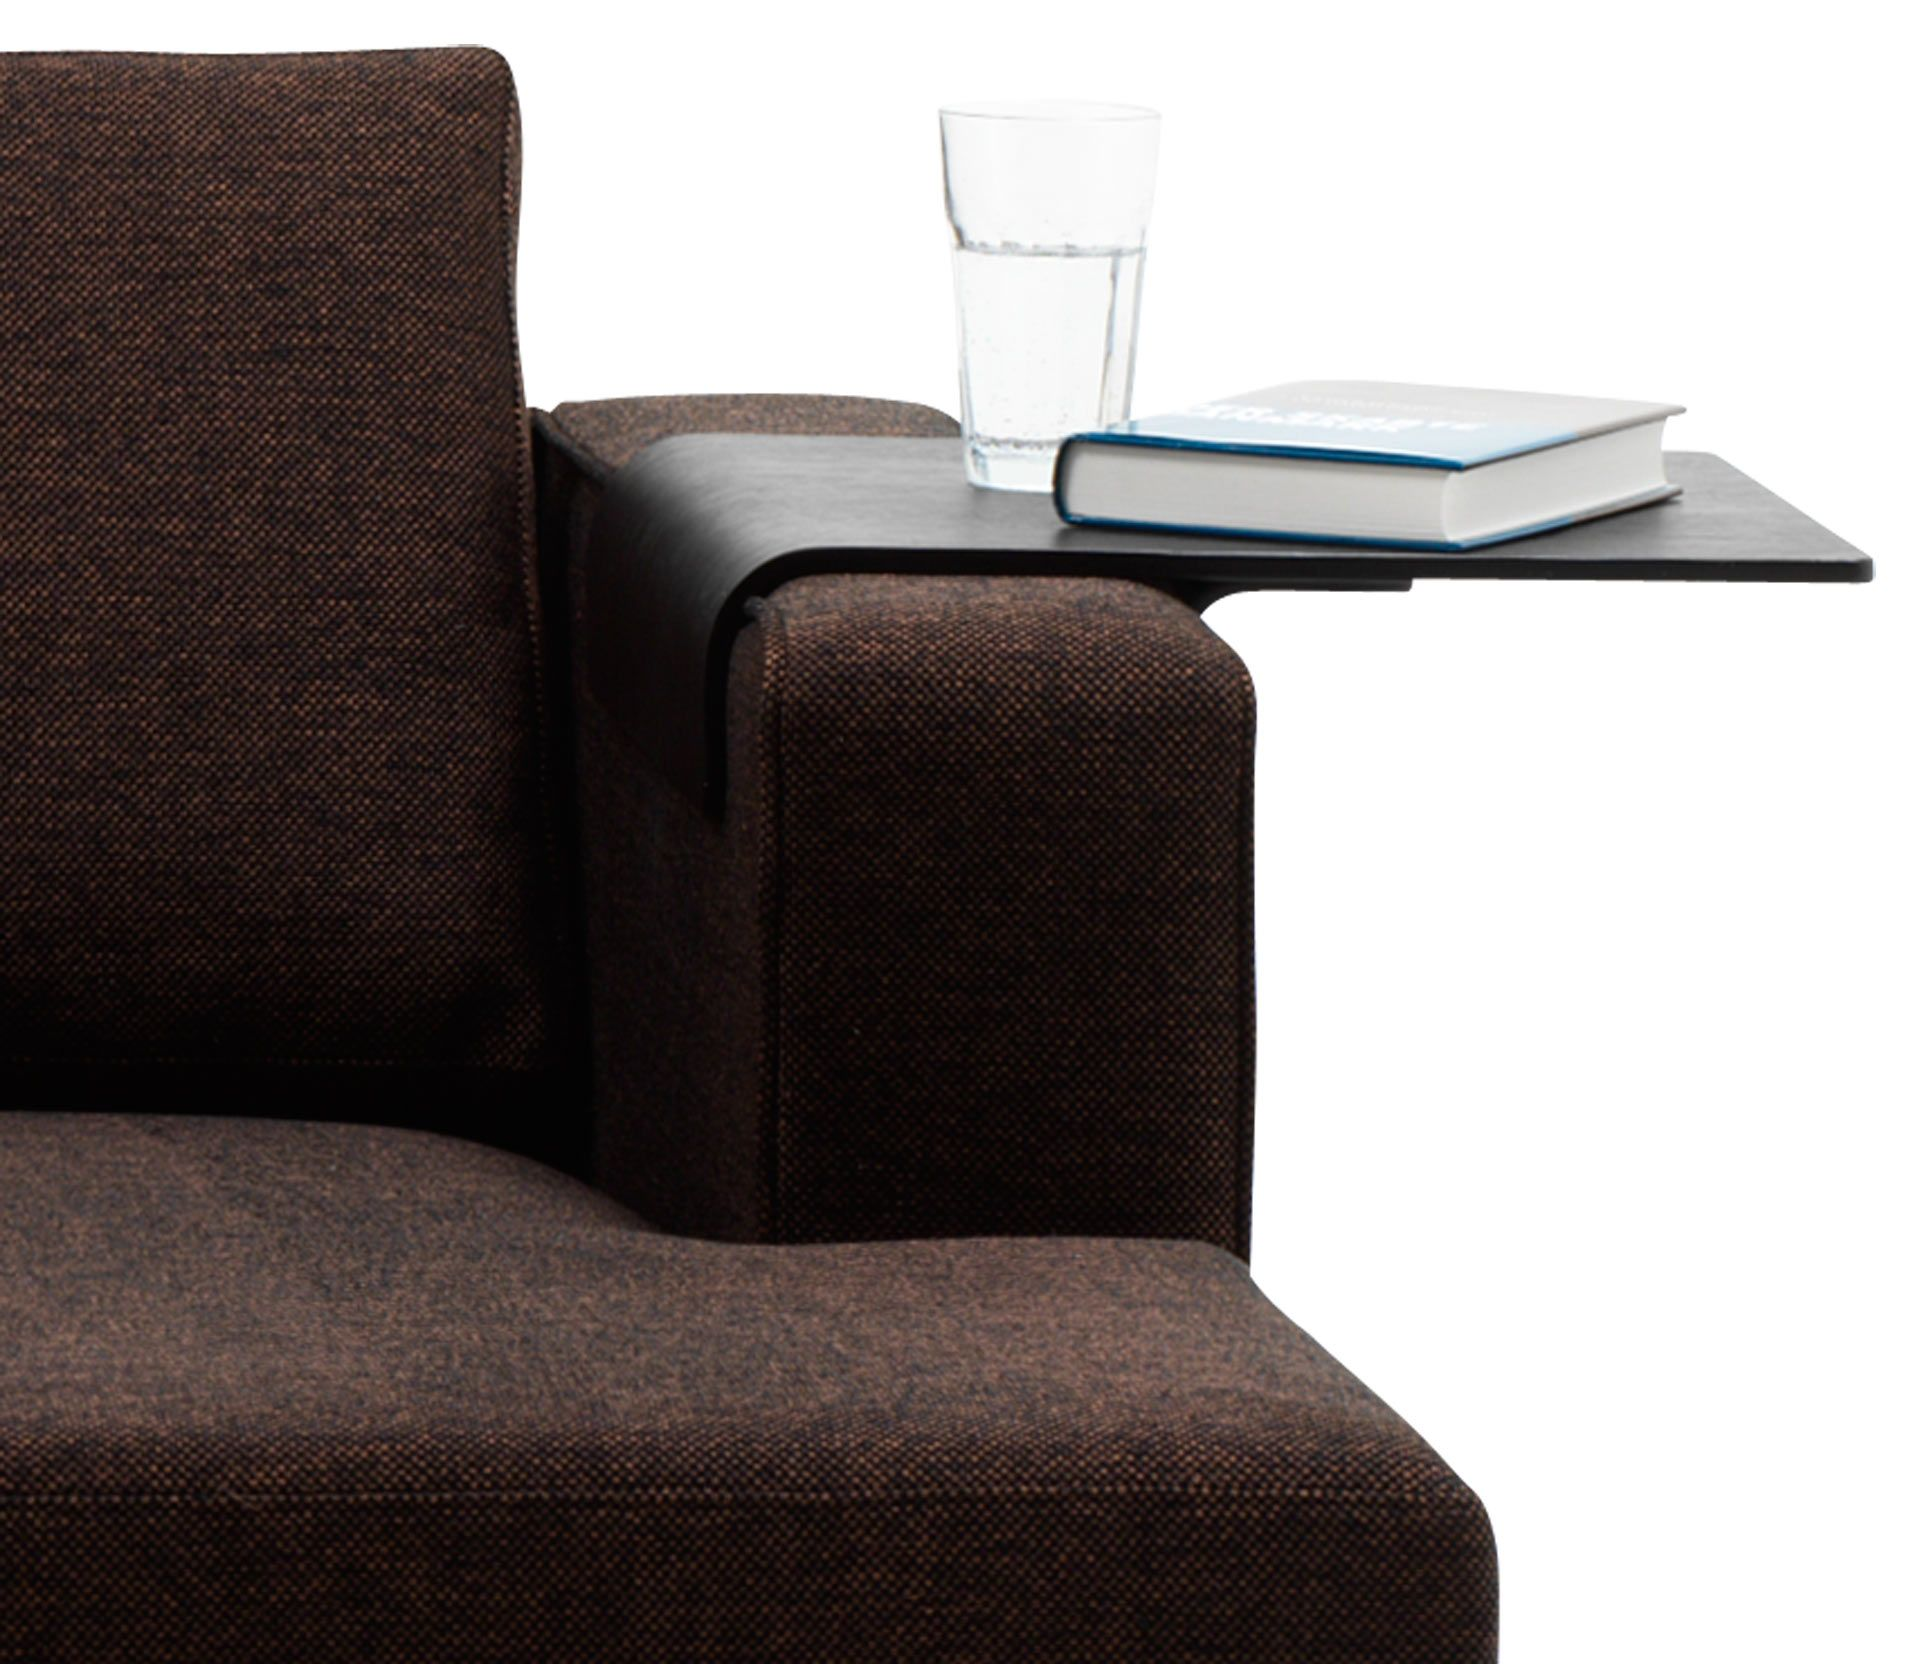 boconcept: tray, black-stained oak veneer in sofa accessories